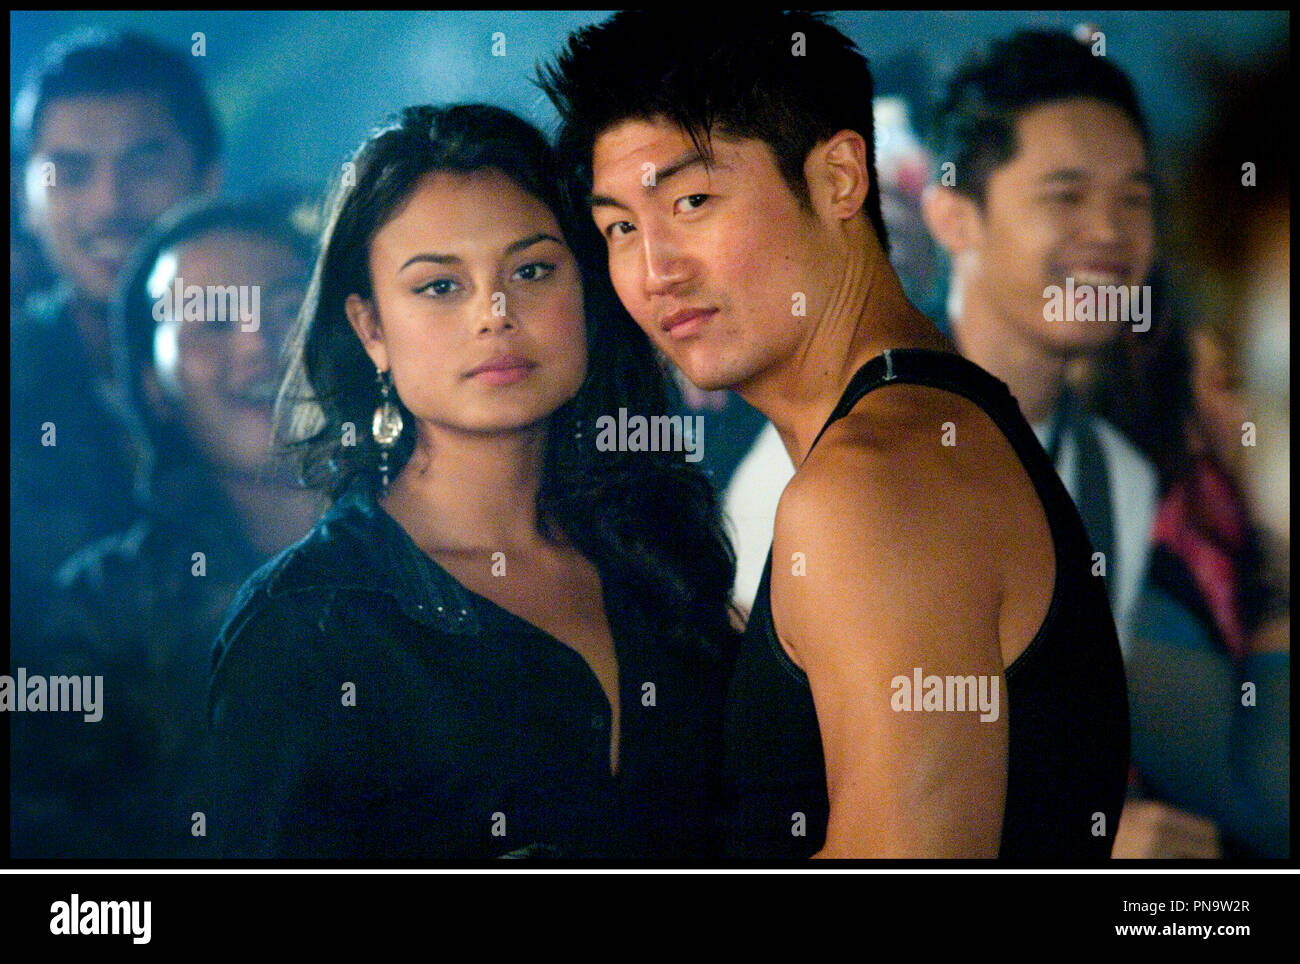 f6d93aeca52 Prod DB © Universal Pictures / DR FAST AND FURIOUS: TOKYO DRIFT (THE FAST